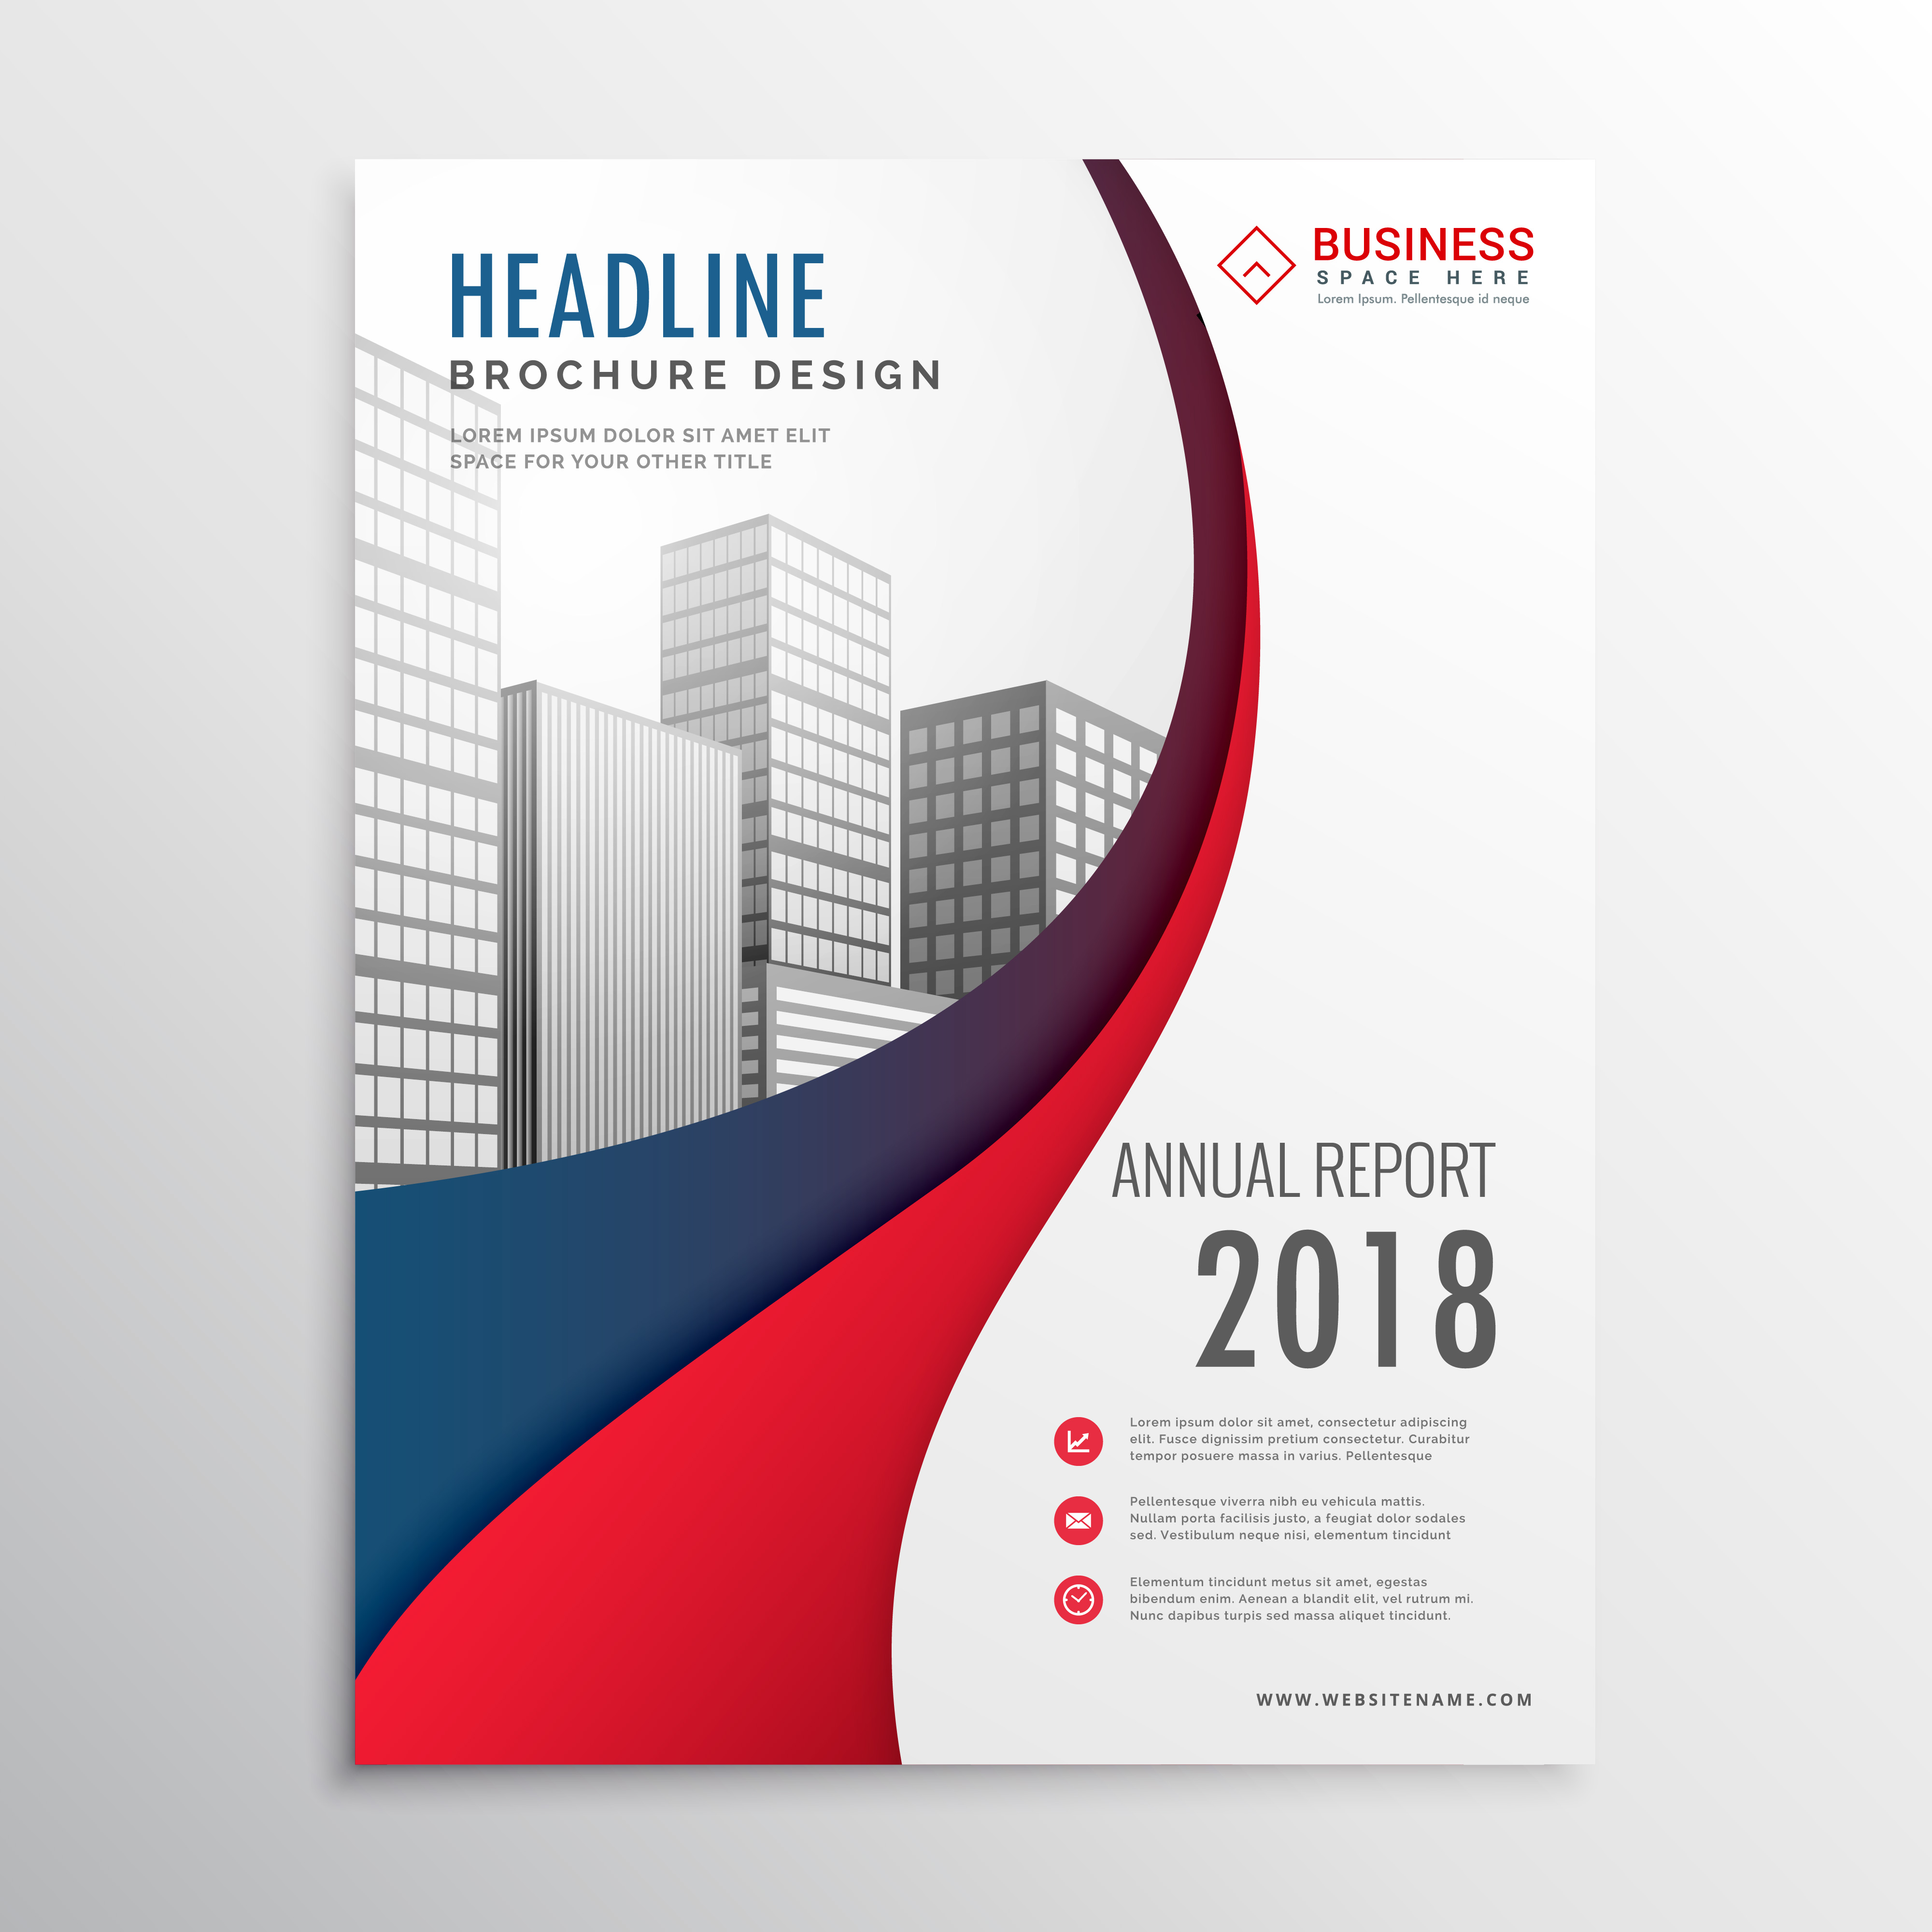 Business Brochure Cover Design Business Brochure: Modern Red And Blue Wave Business Brochure Template Design